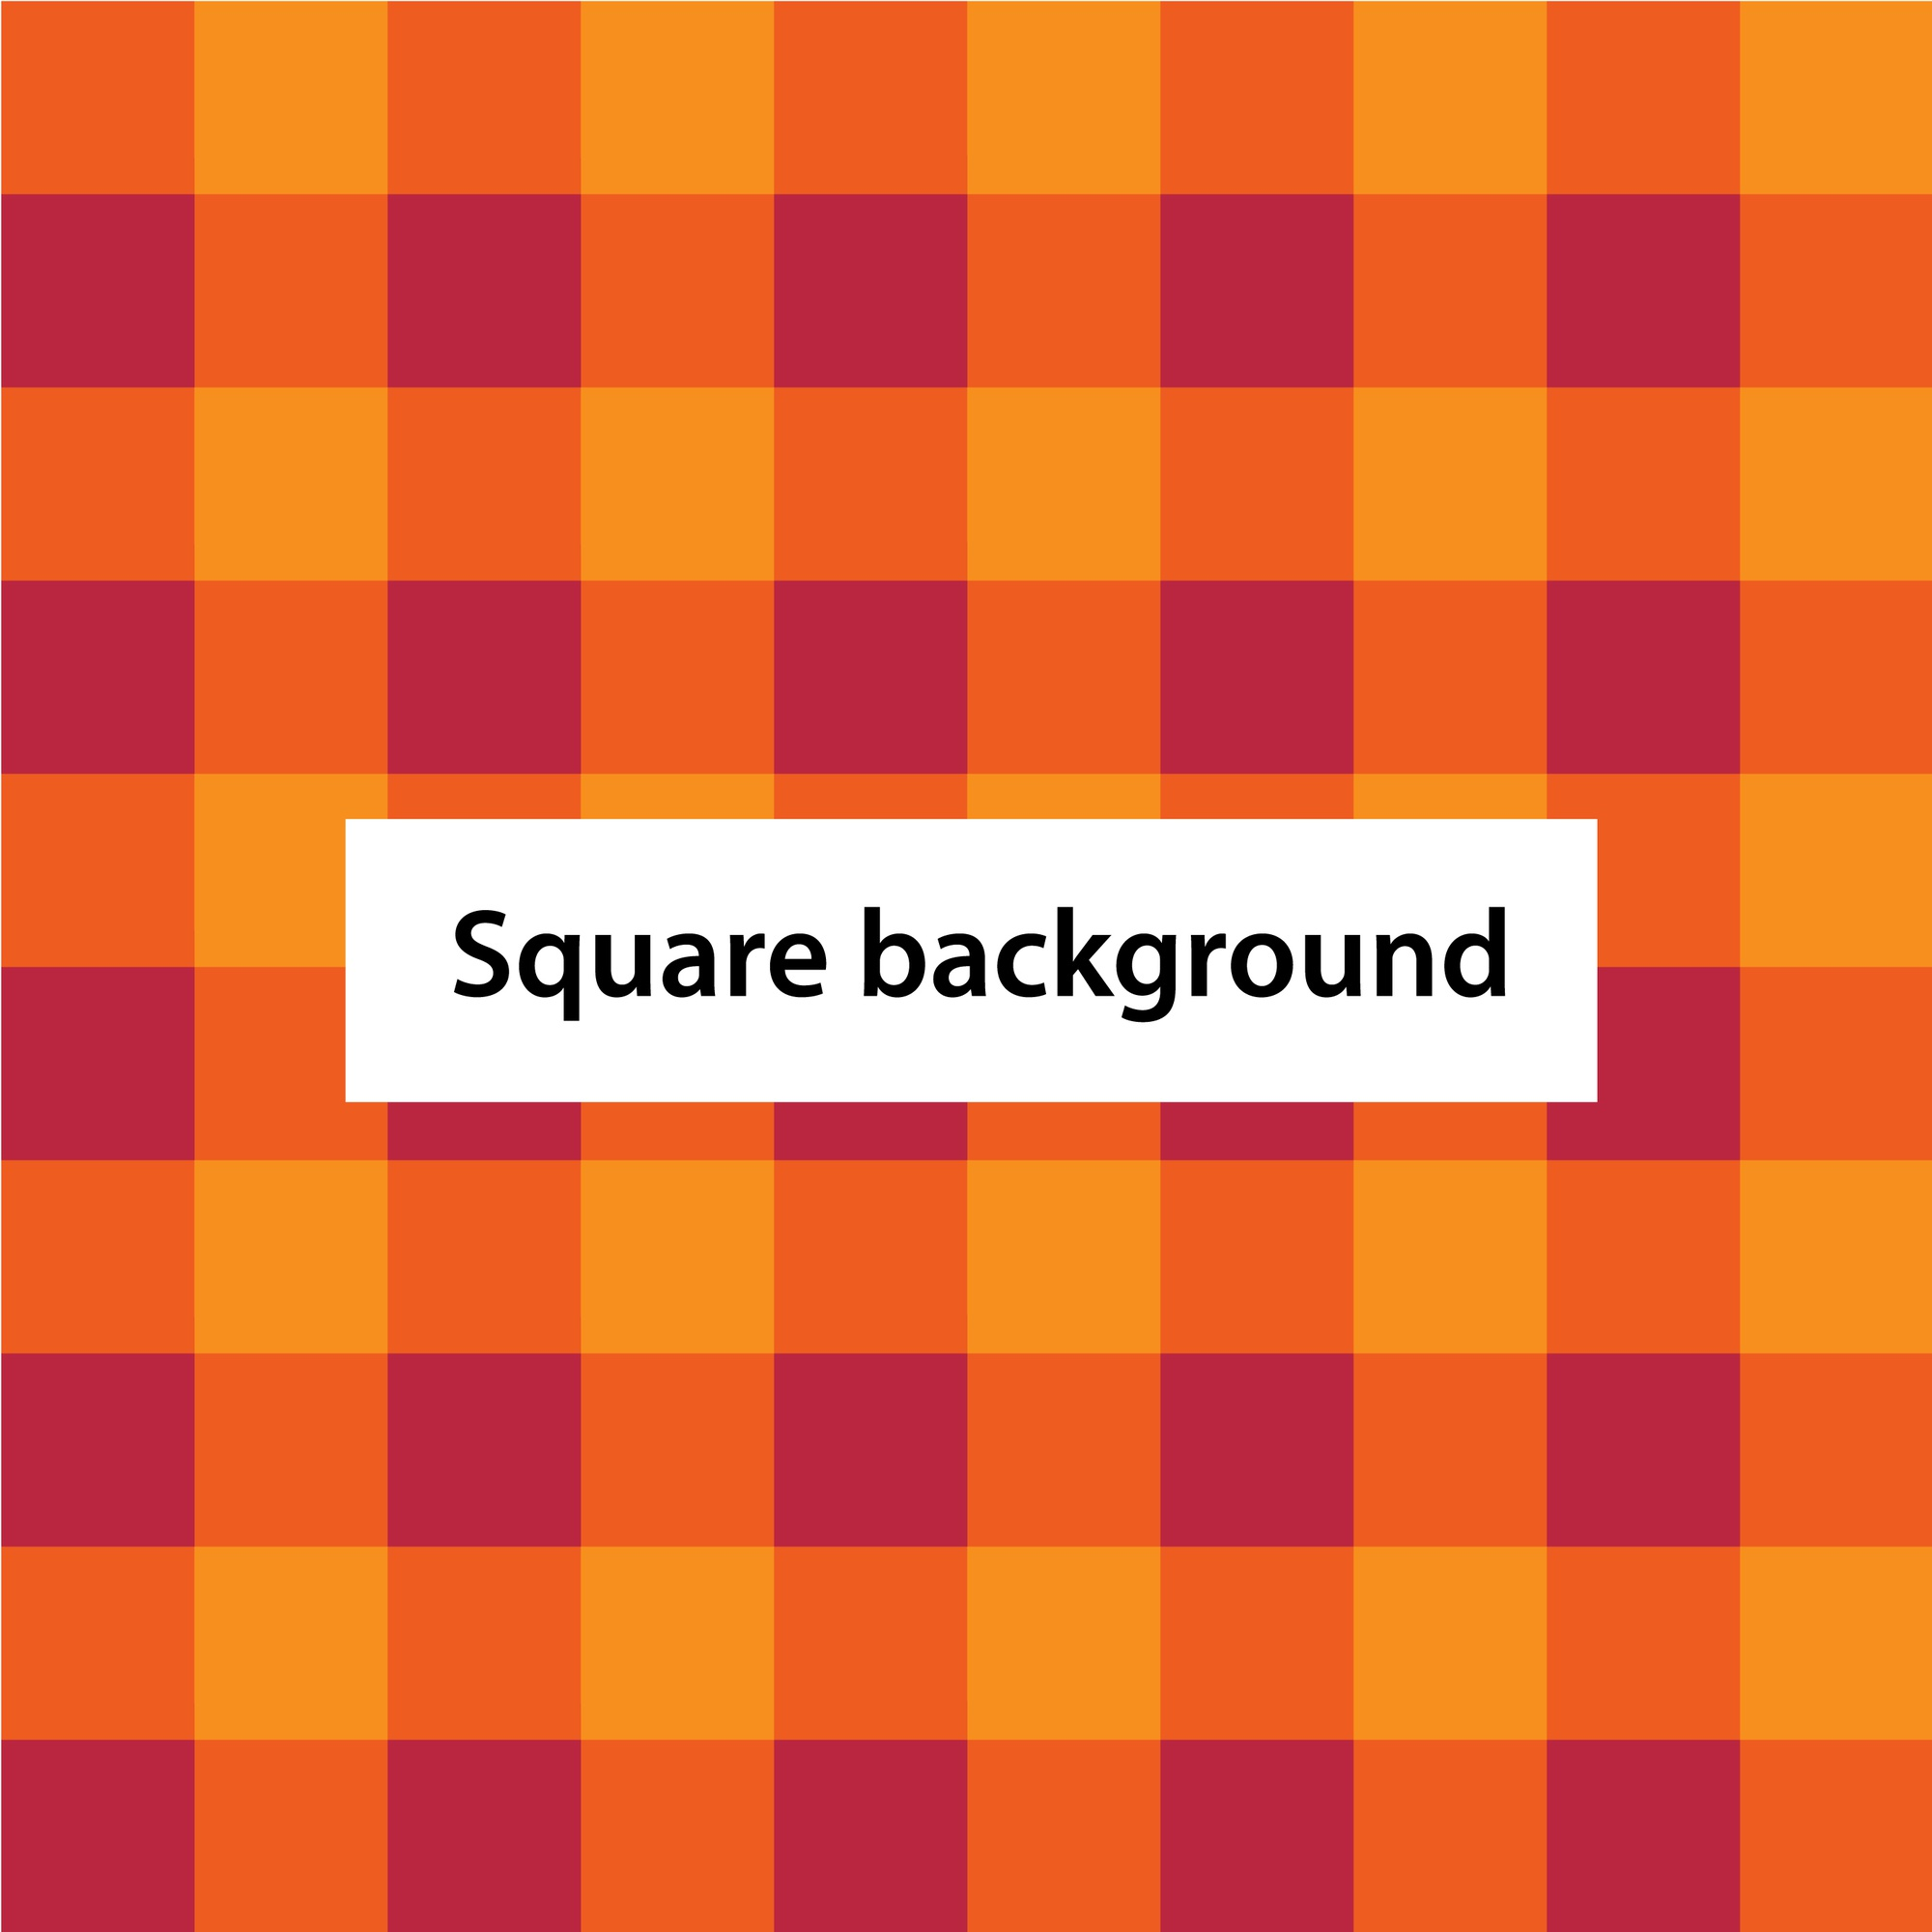 Square grid crate background